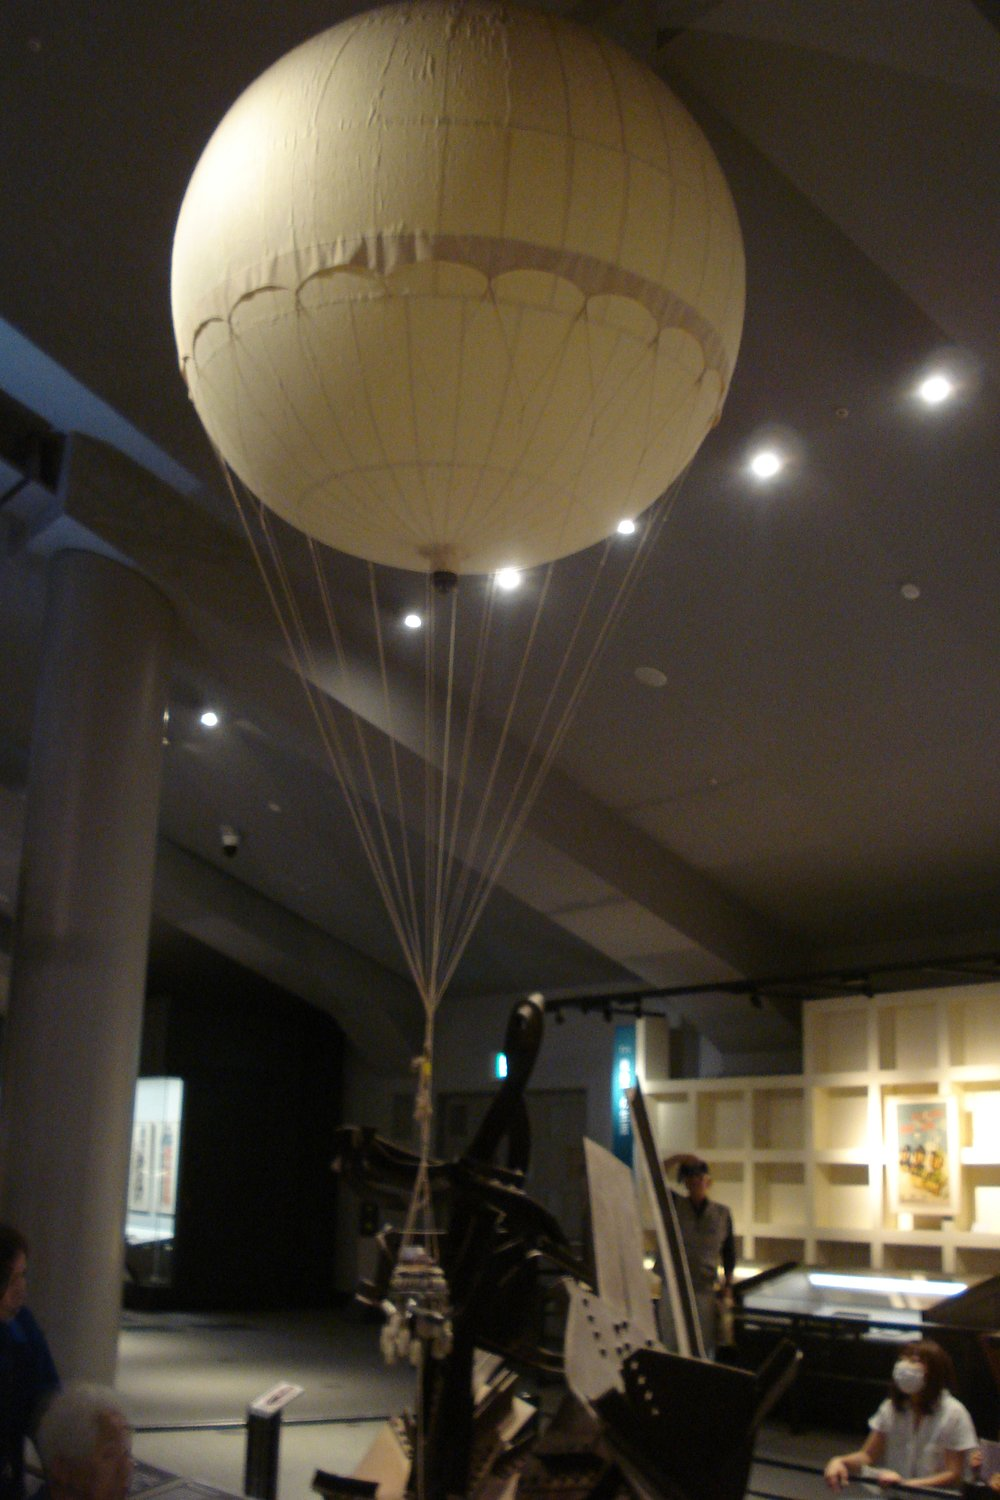 Fire Balloon display, Tokyo National Museum.  The balloon is one-third the size of the actual 1944 balloons.  The original balloons were 2 times this size.  If you are ever in Tokyo, this museum (also known as the Edo Museum) is one of the best museums in the world.